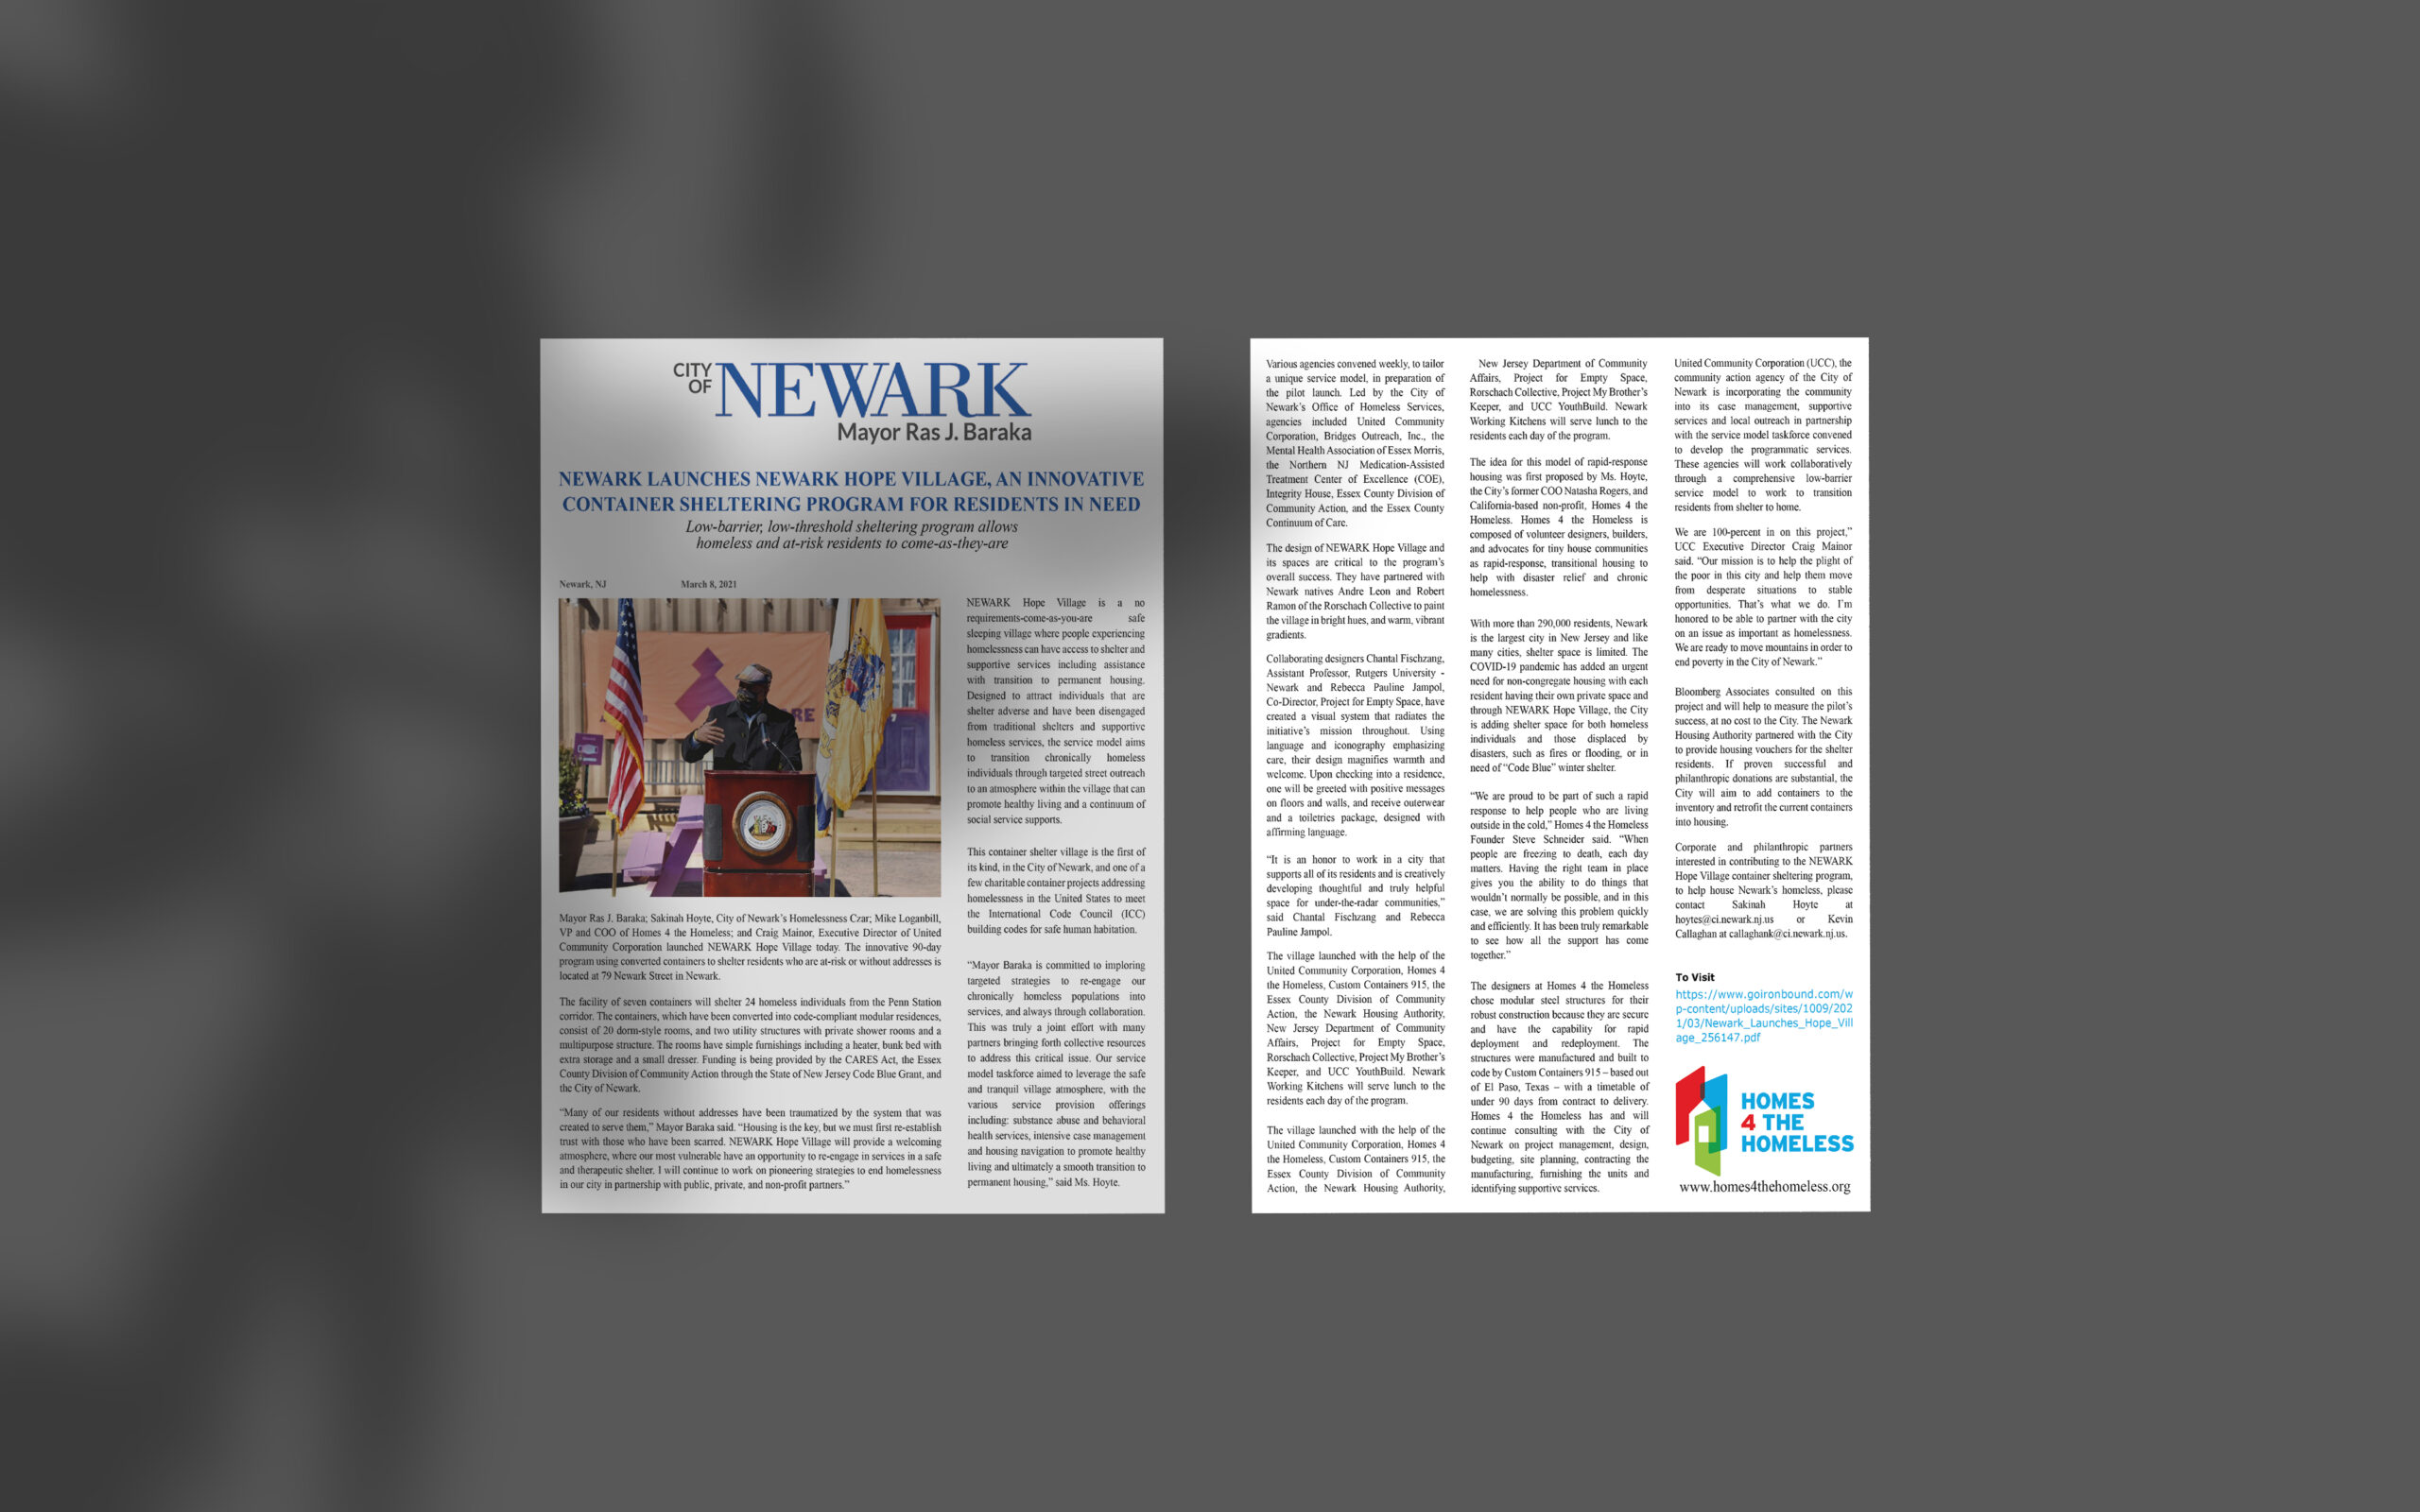 City of Newark, New Jersey Press Release March 8, 2021